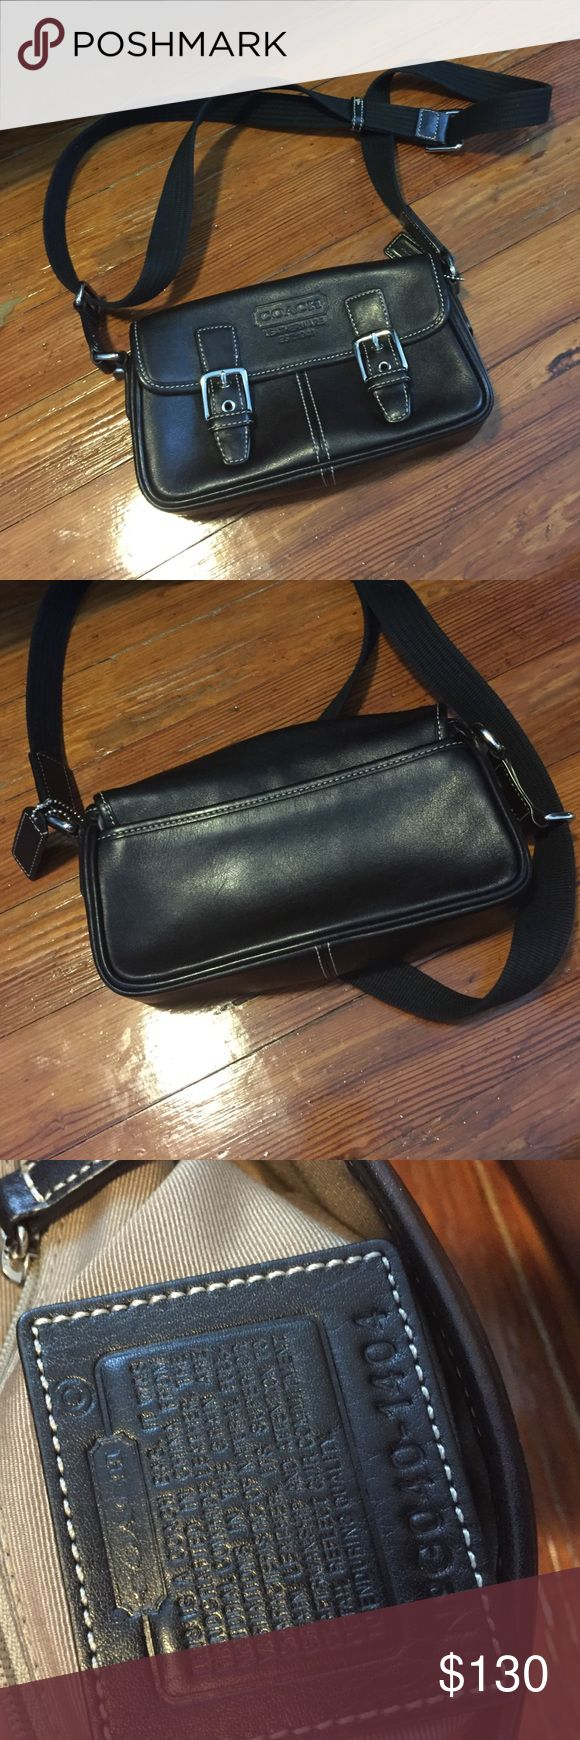 Coach leather shoulder bag EUC Coach leather bag with adjustable fabric shoulder strap. Absolutely no stains or flaws as this was barely used. Coach Bags Shoulder Bags